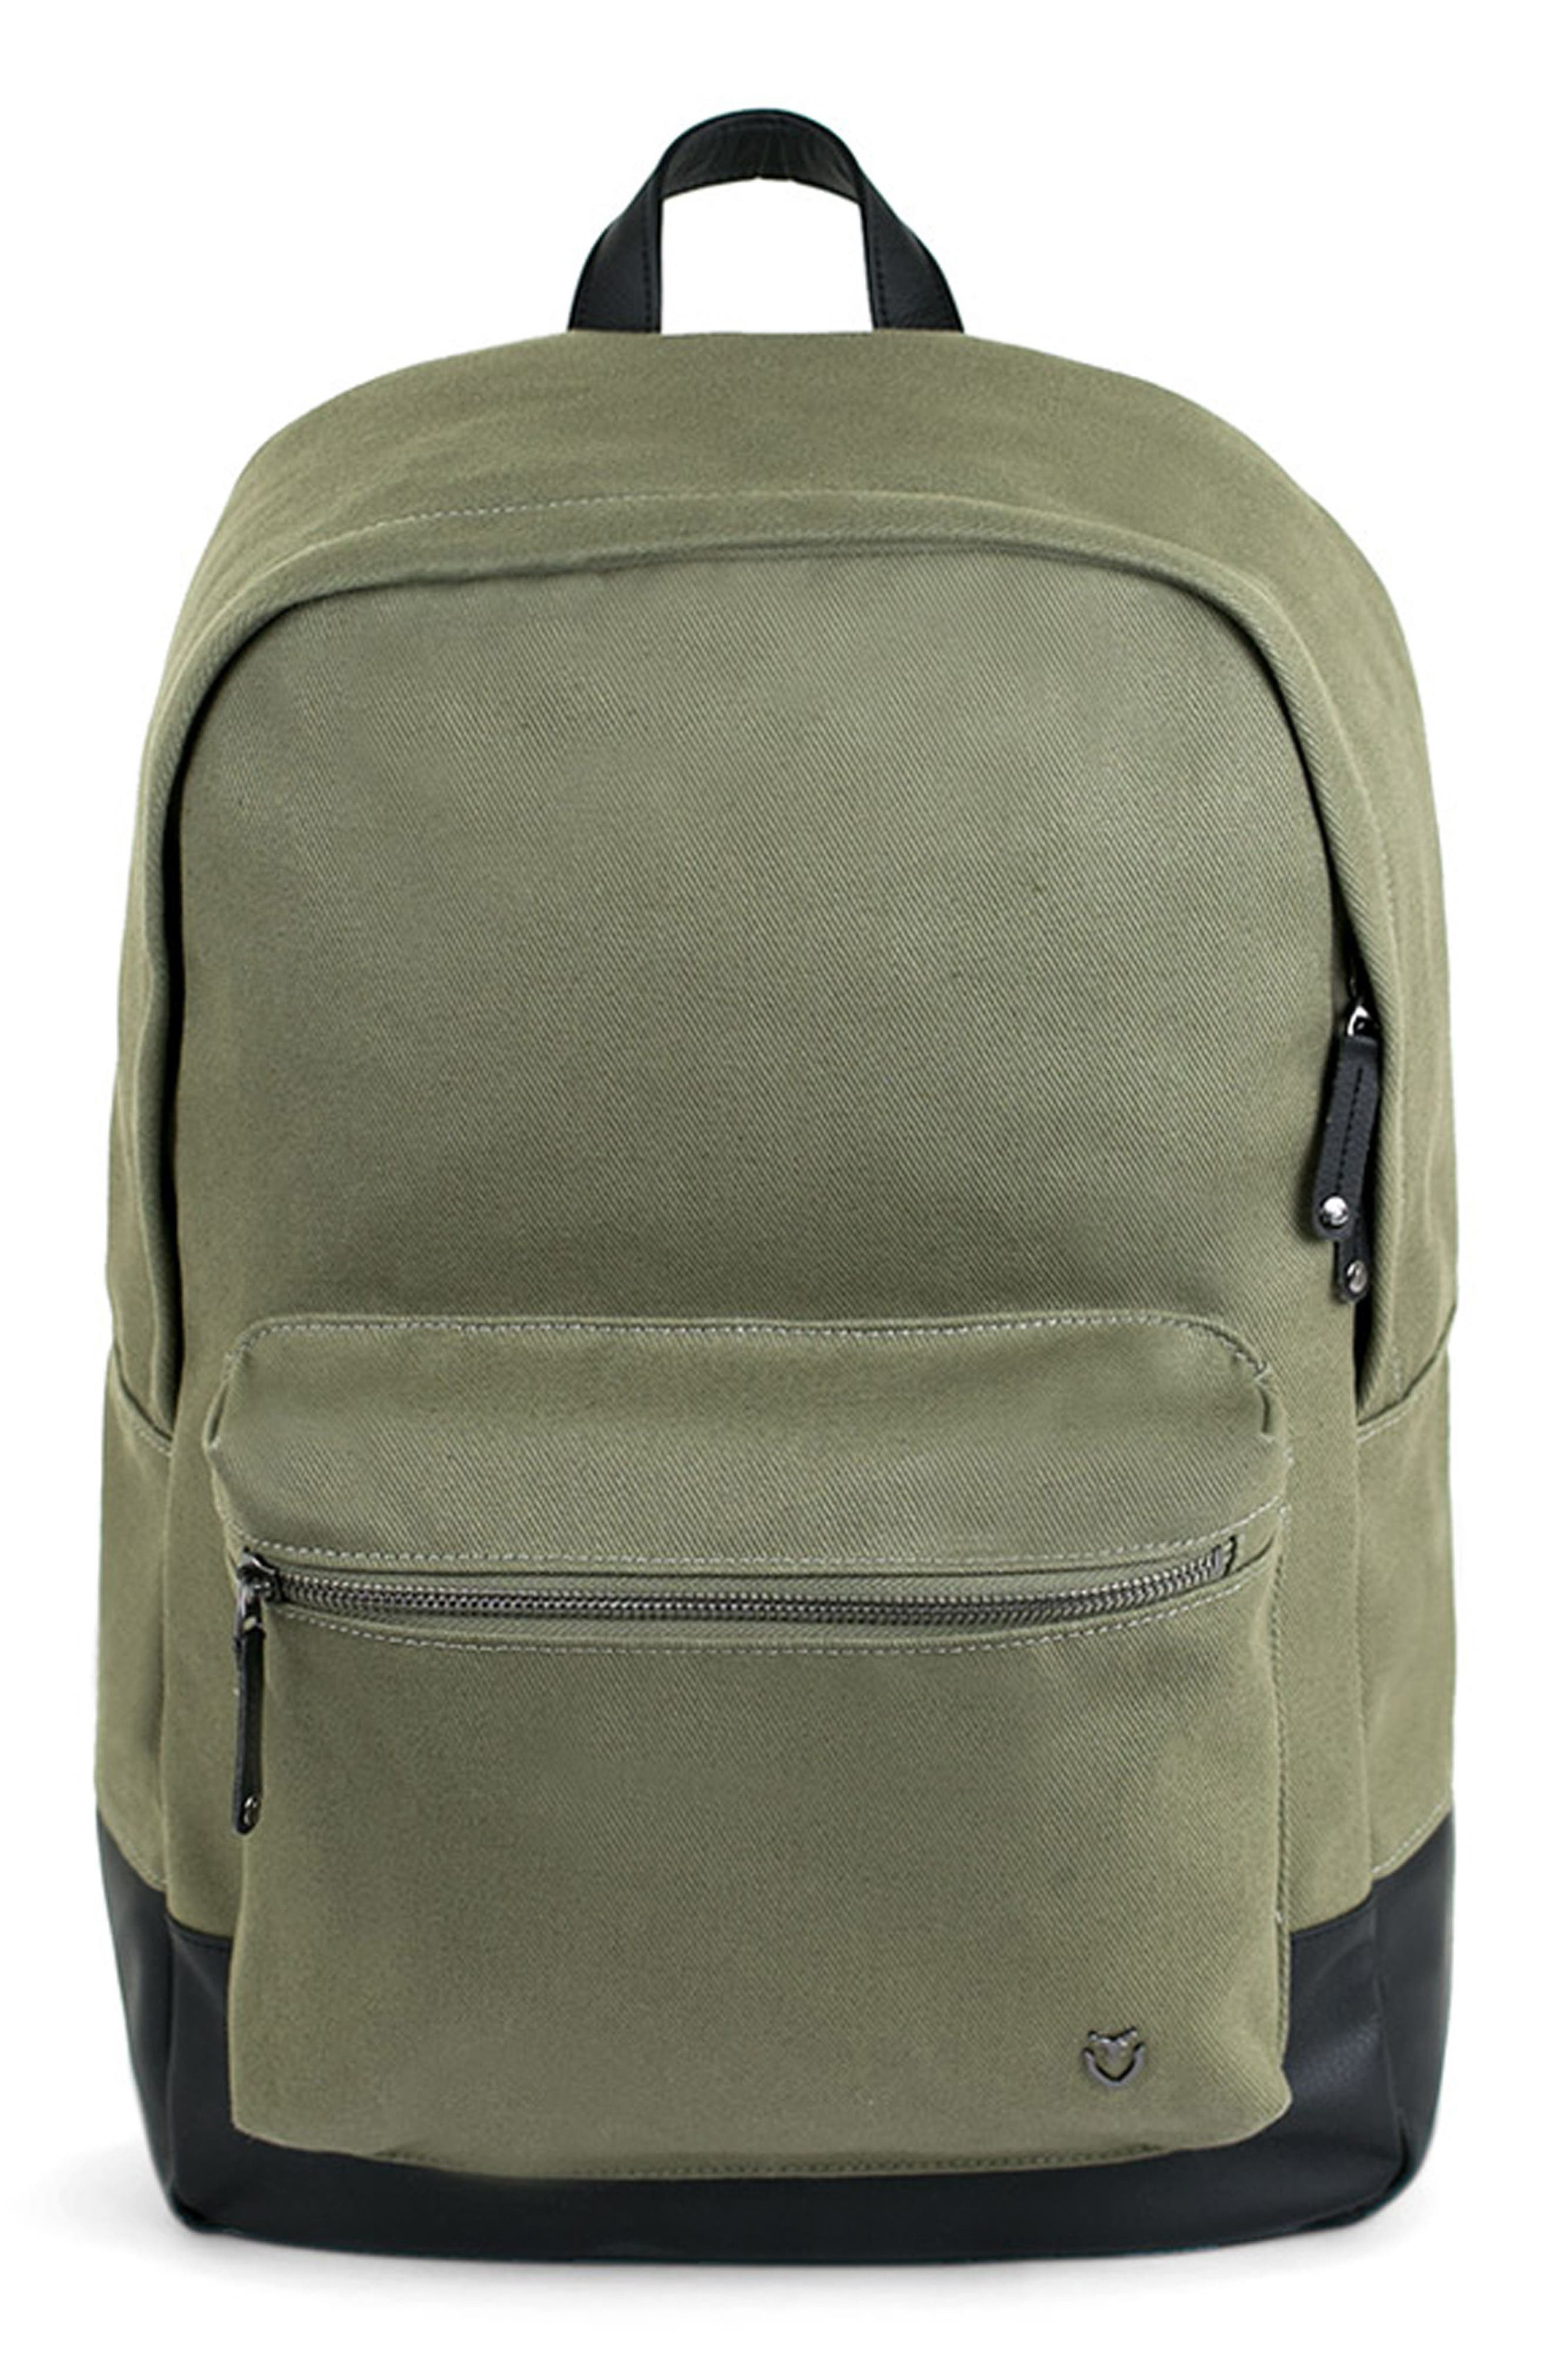 Refined Backpack,                             Main thumbnail 1, color,                             Olive